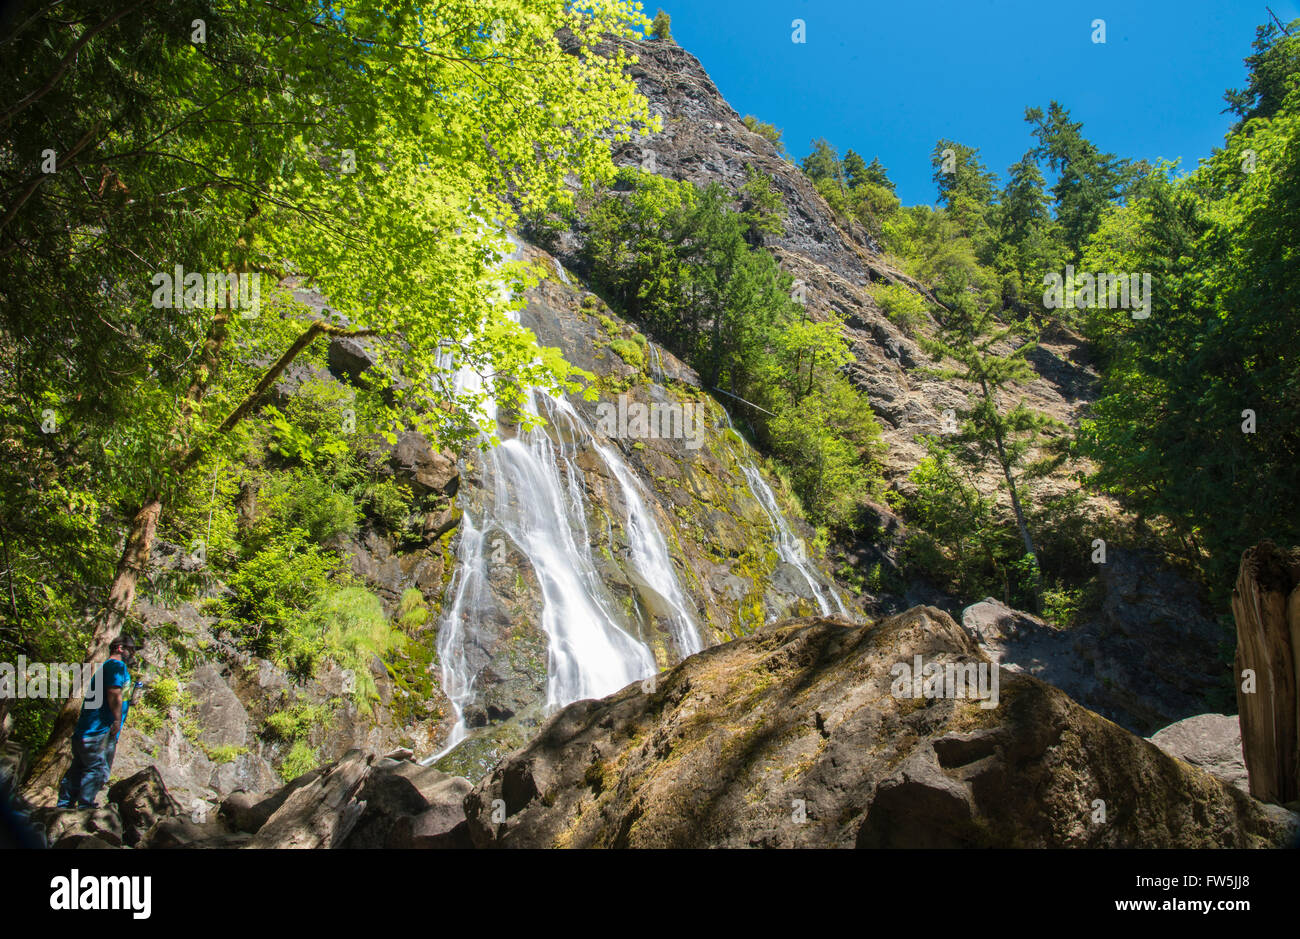 Waterfall green trees fresh air and blue sky. - Stock Image